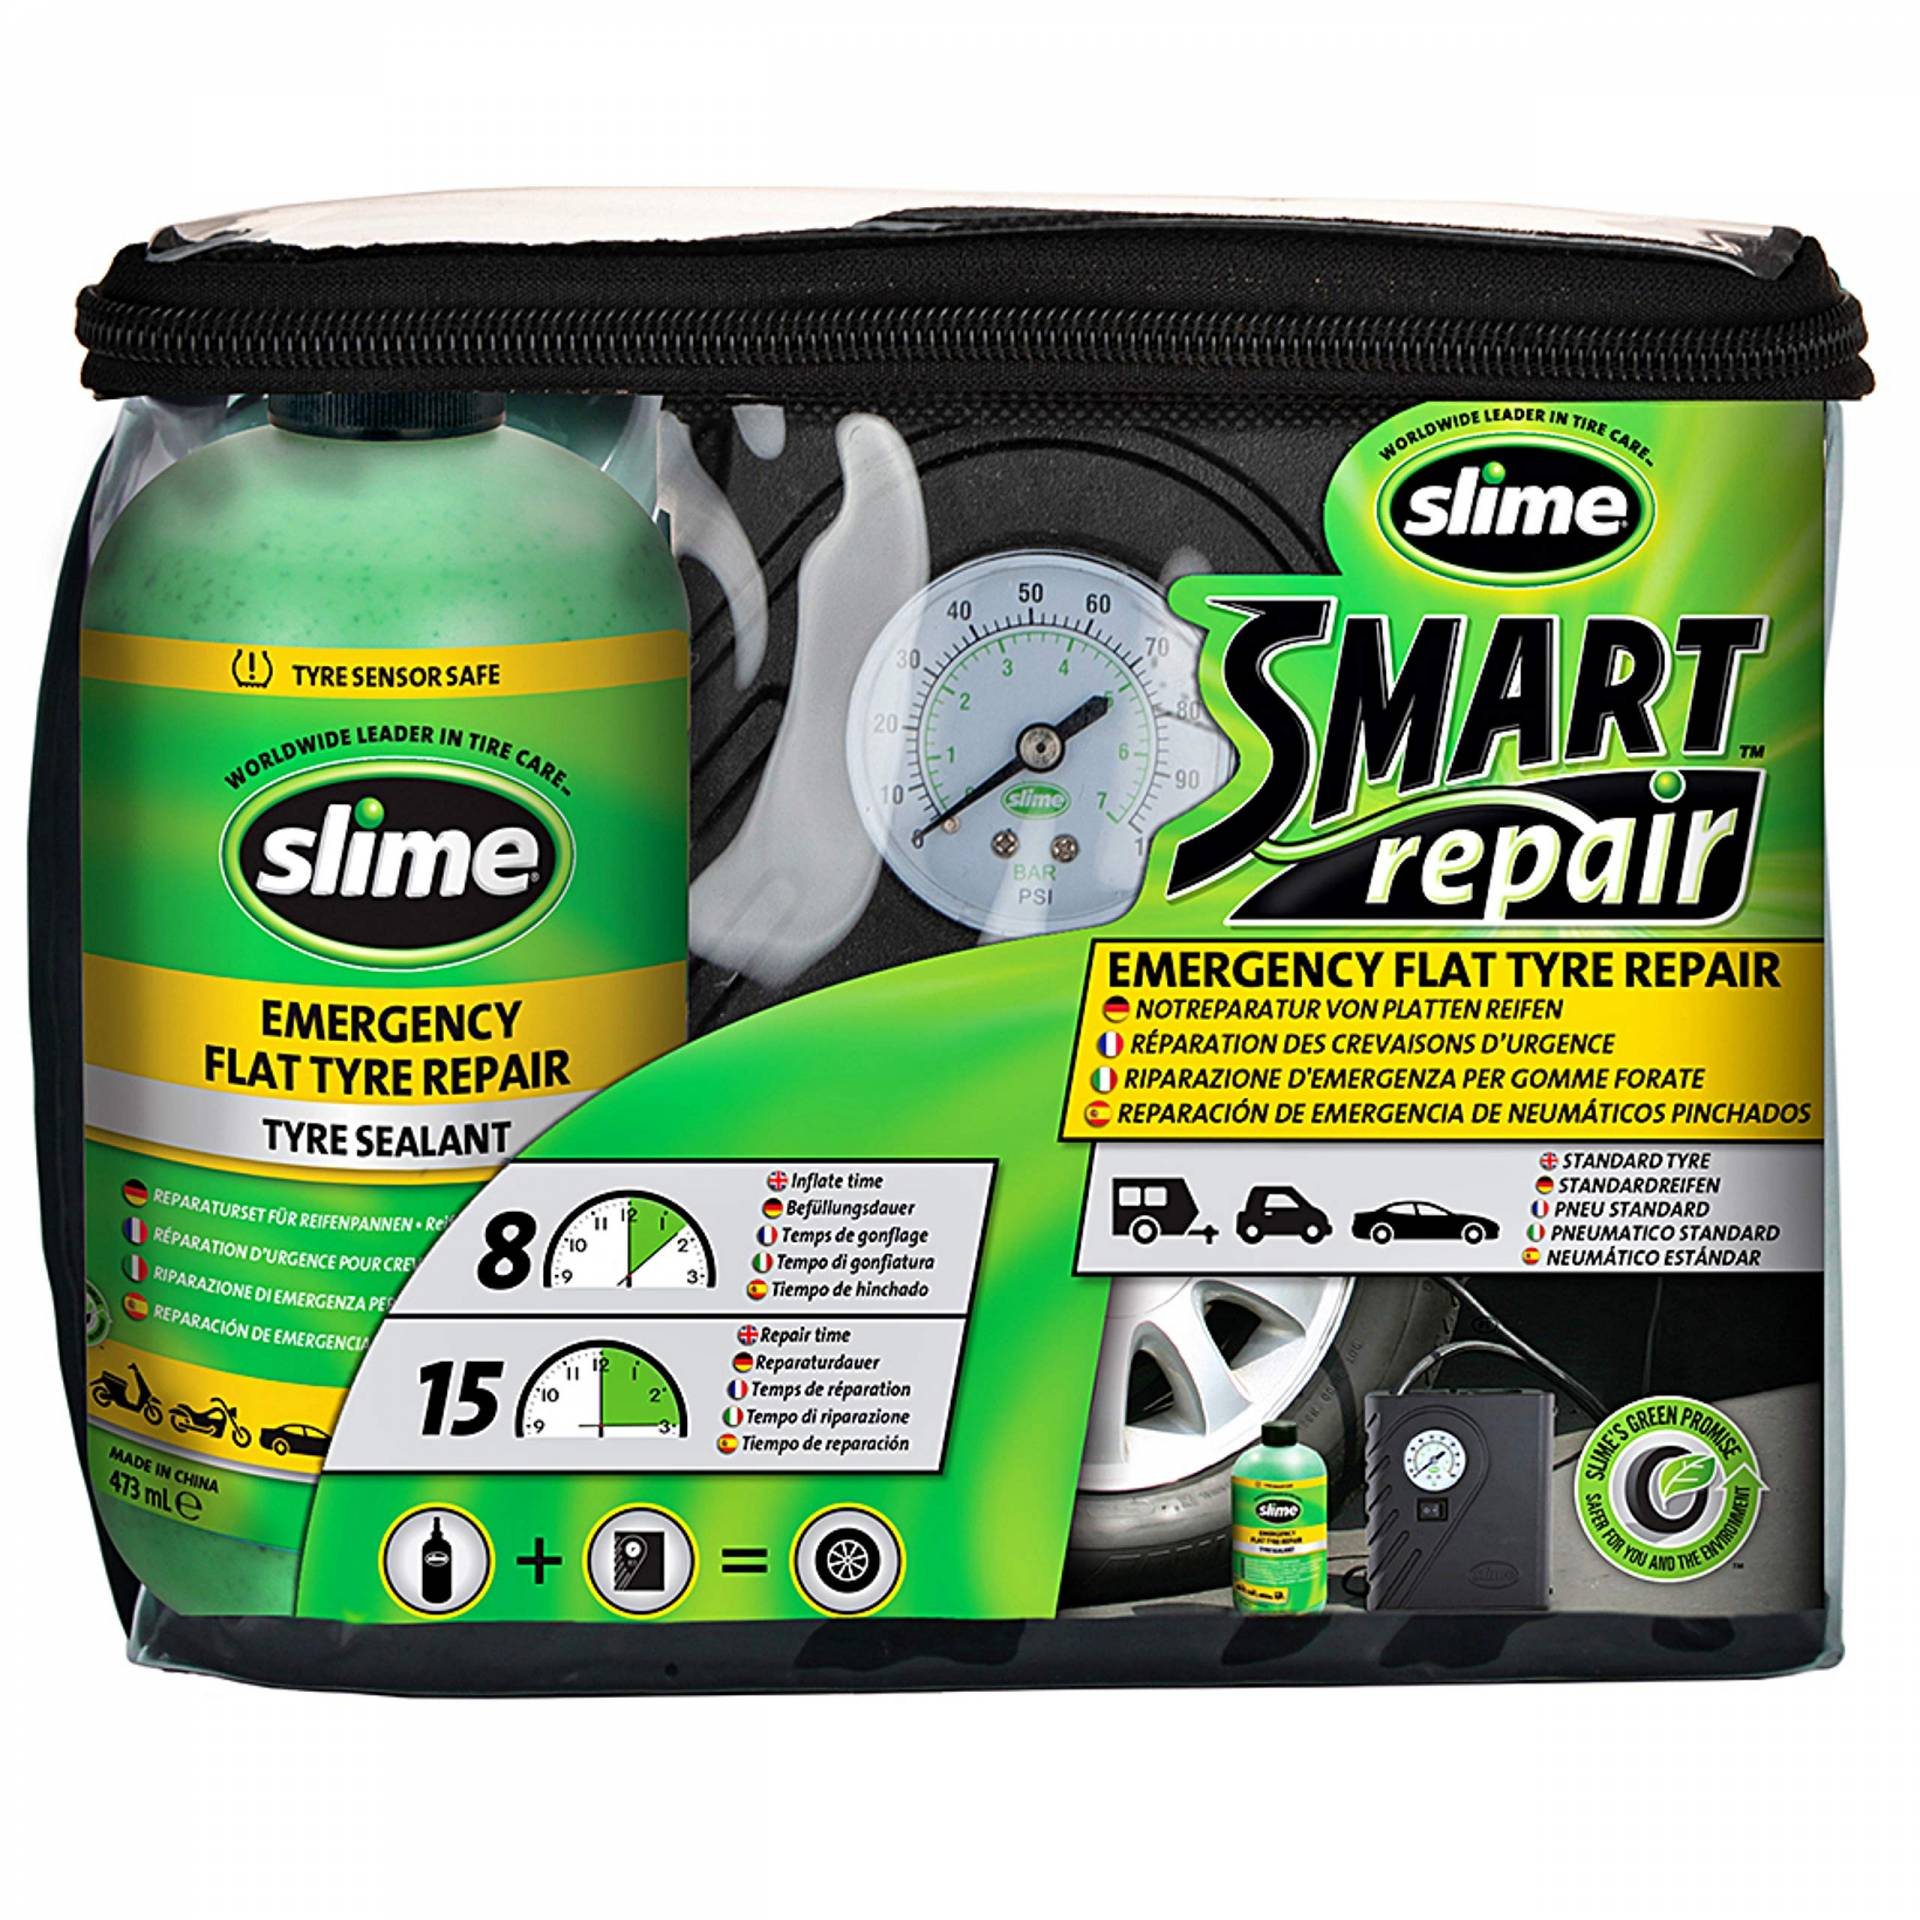 slime 45078604 Smart repair set, Black von Slime